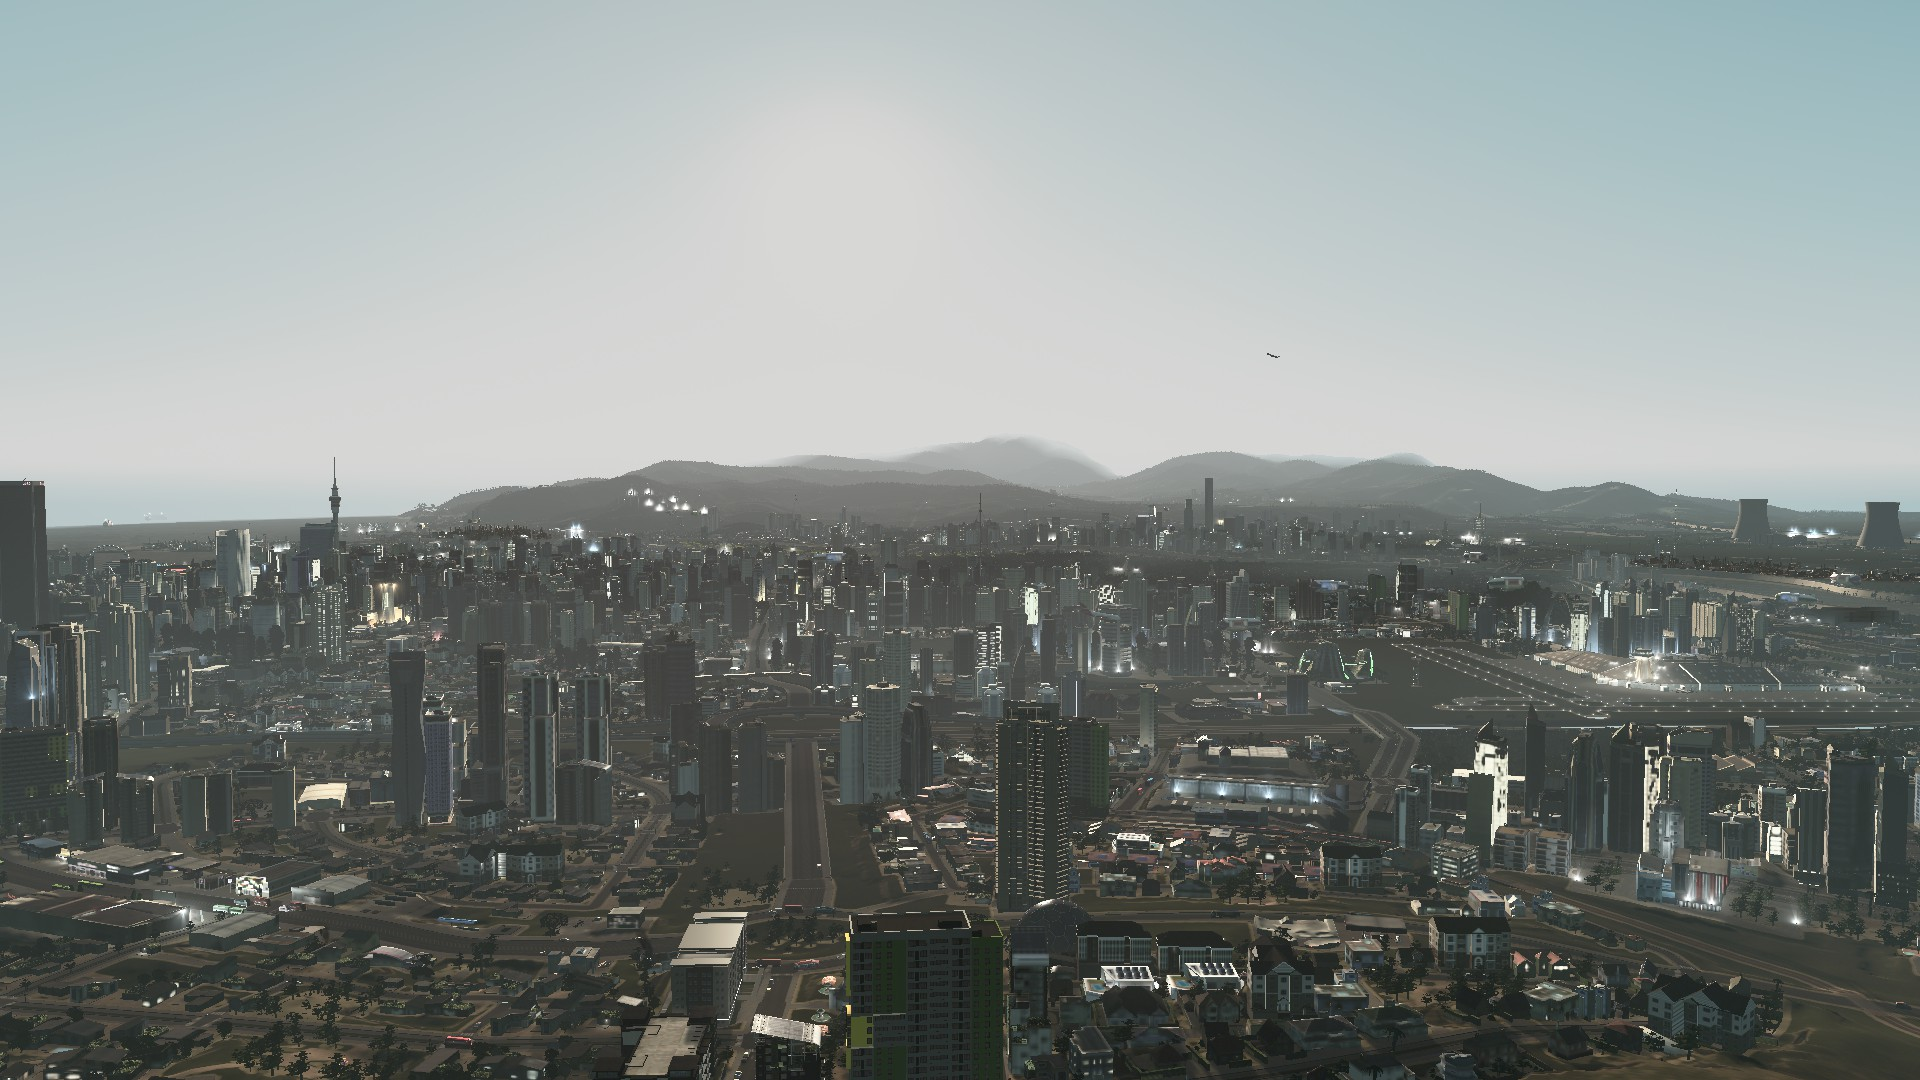 To 2018 with Ben's #CitiesSkylines